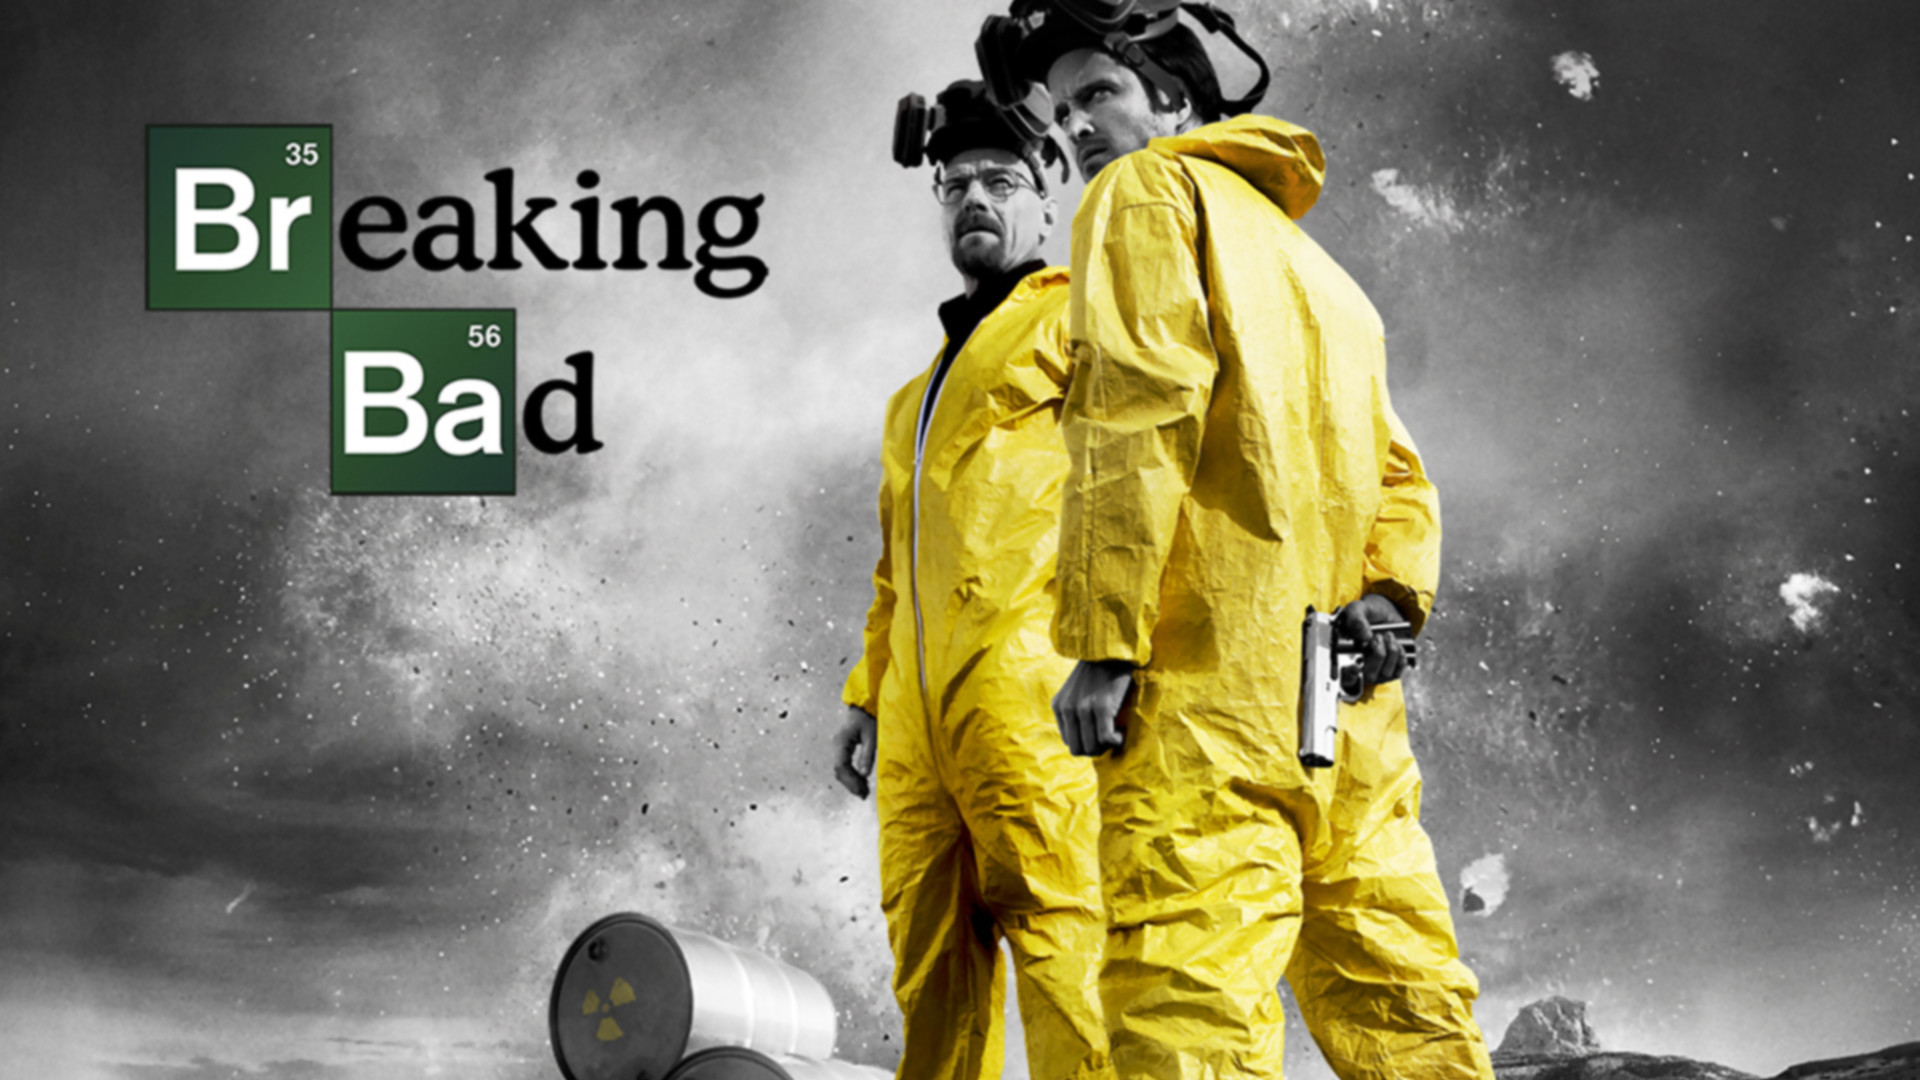 1920x1080 Breaking Bad wallpaper 13